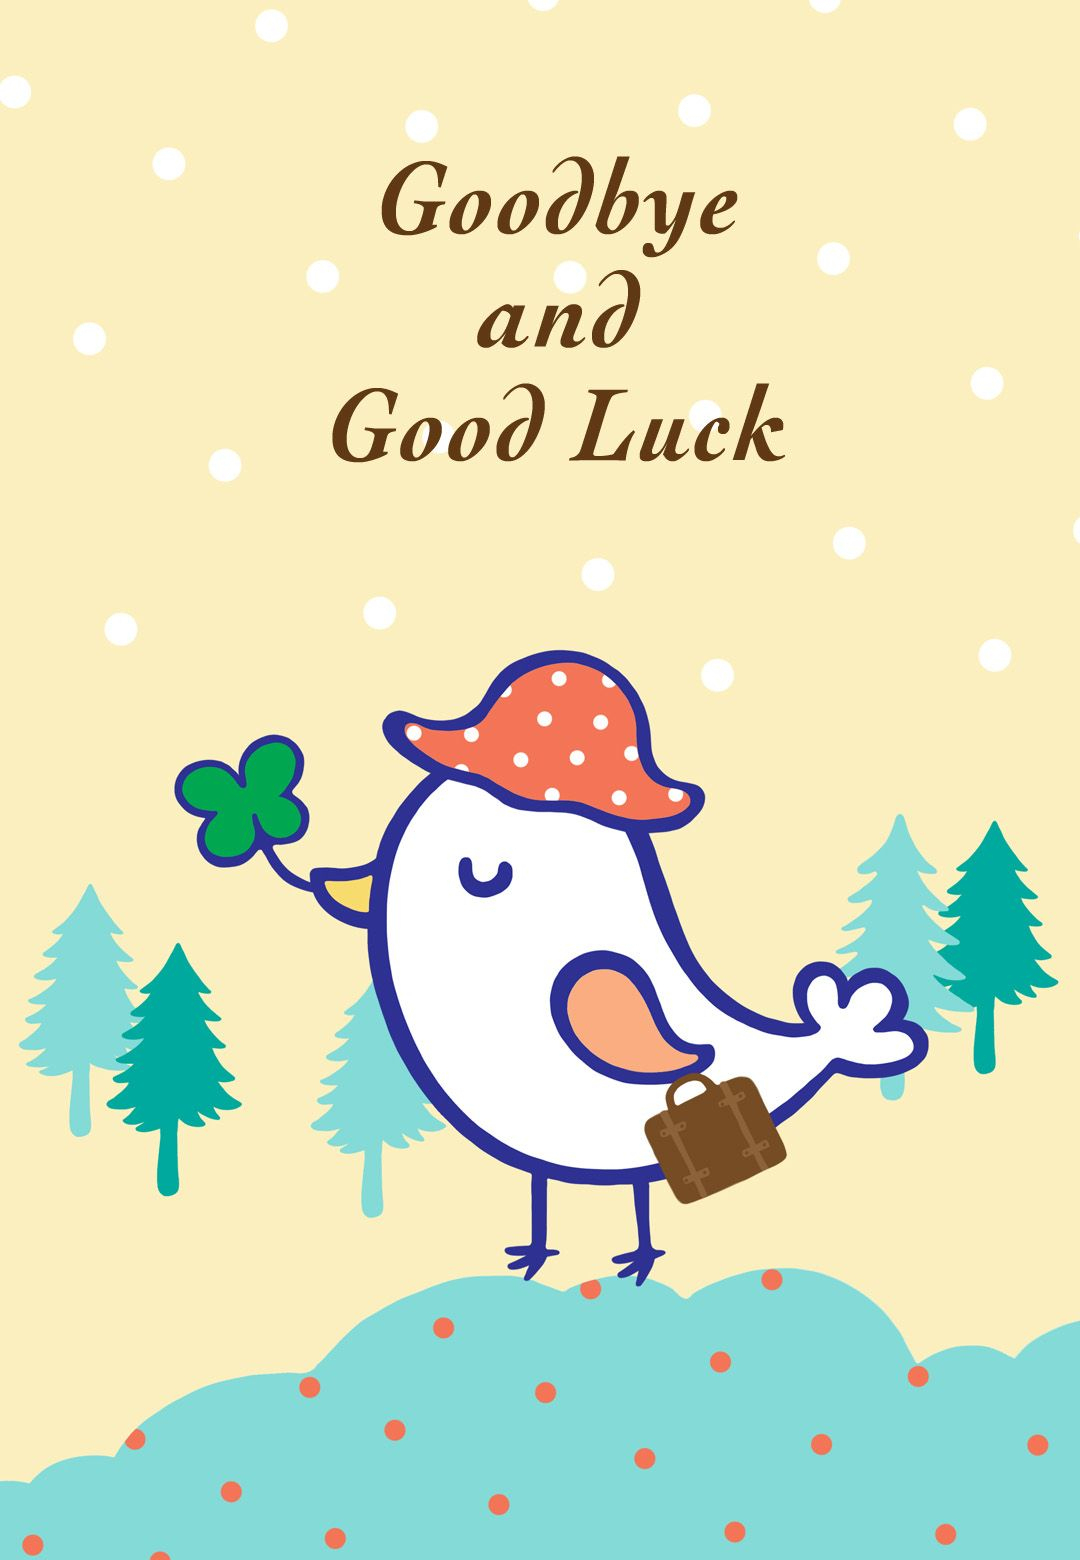 Free Printable Goodbye And Good Luck Greeting Card | Littlestar - Free Printable Cards No Download Required